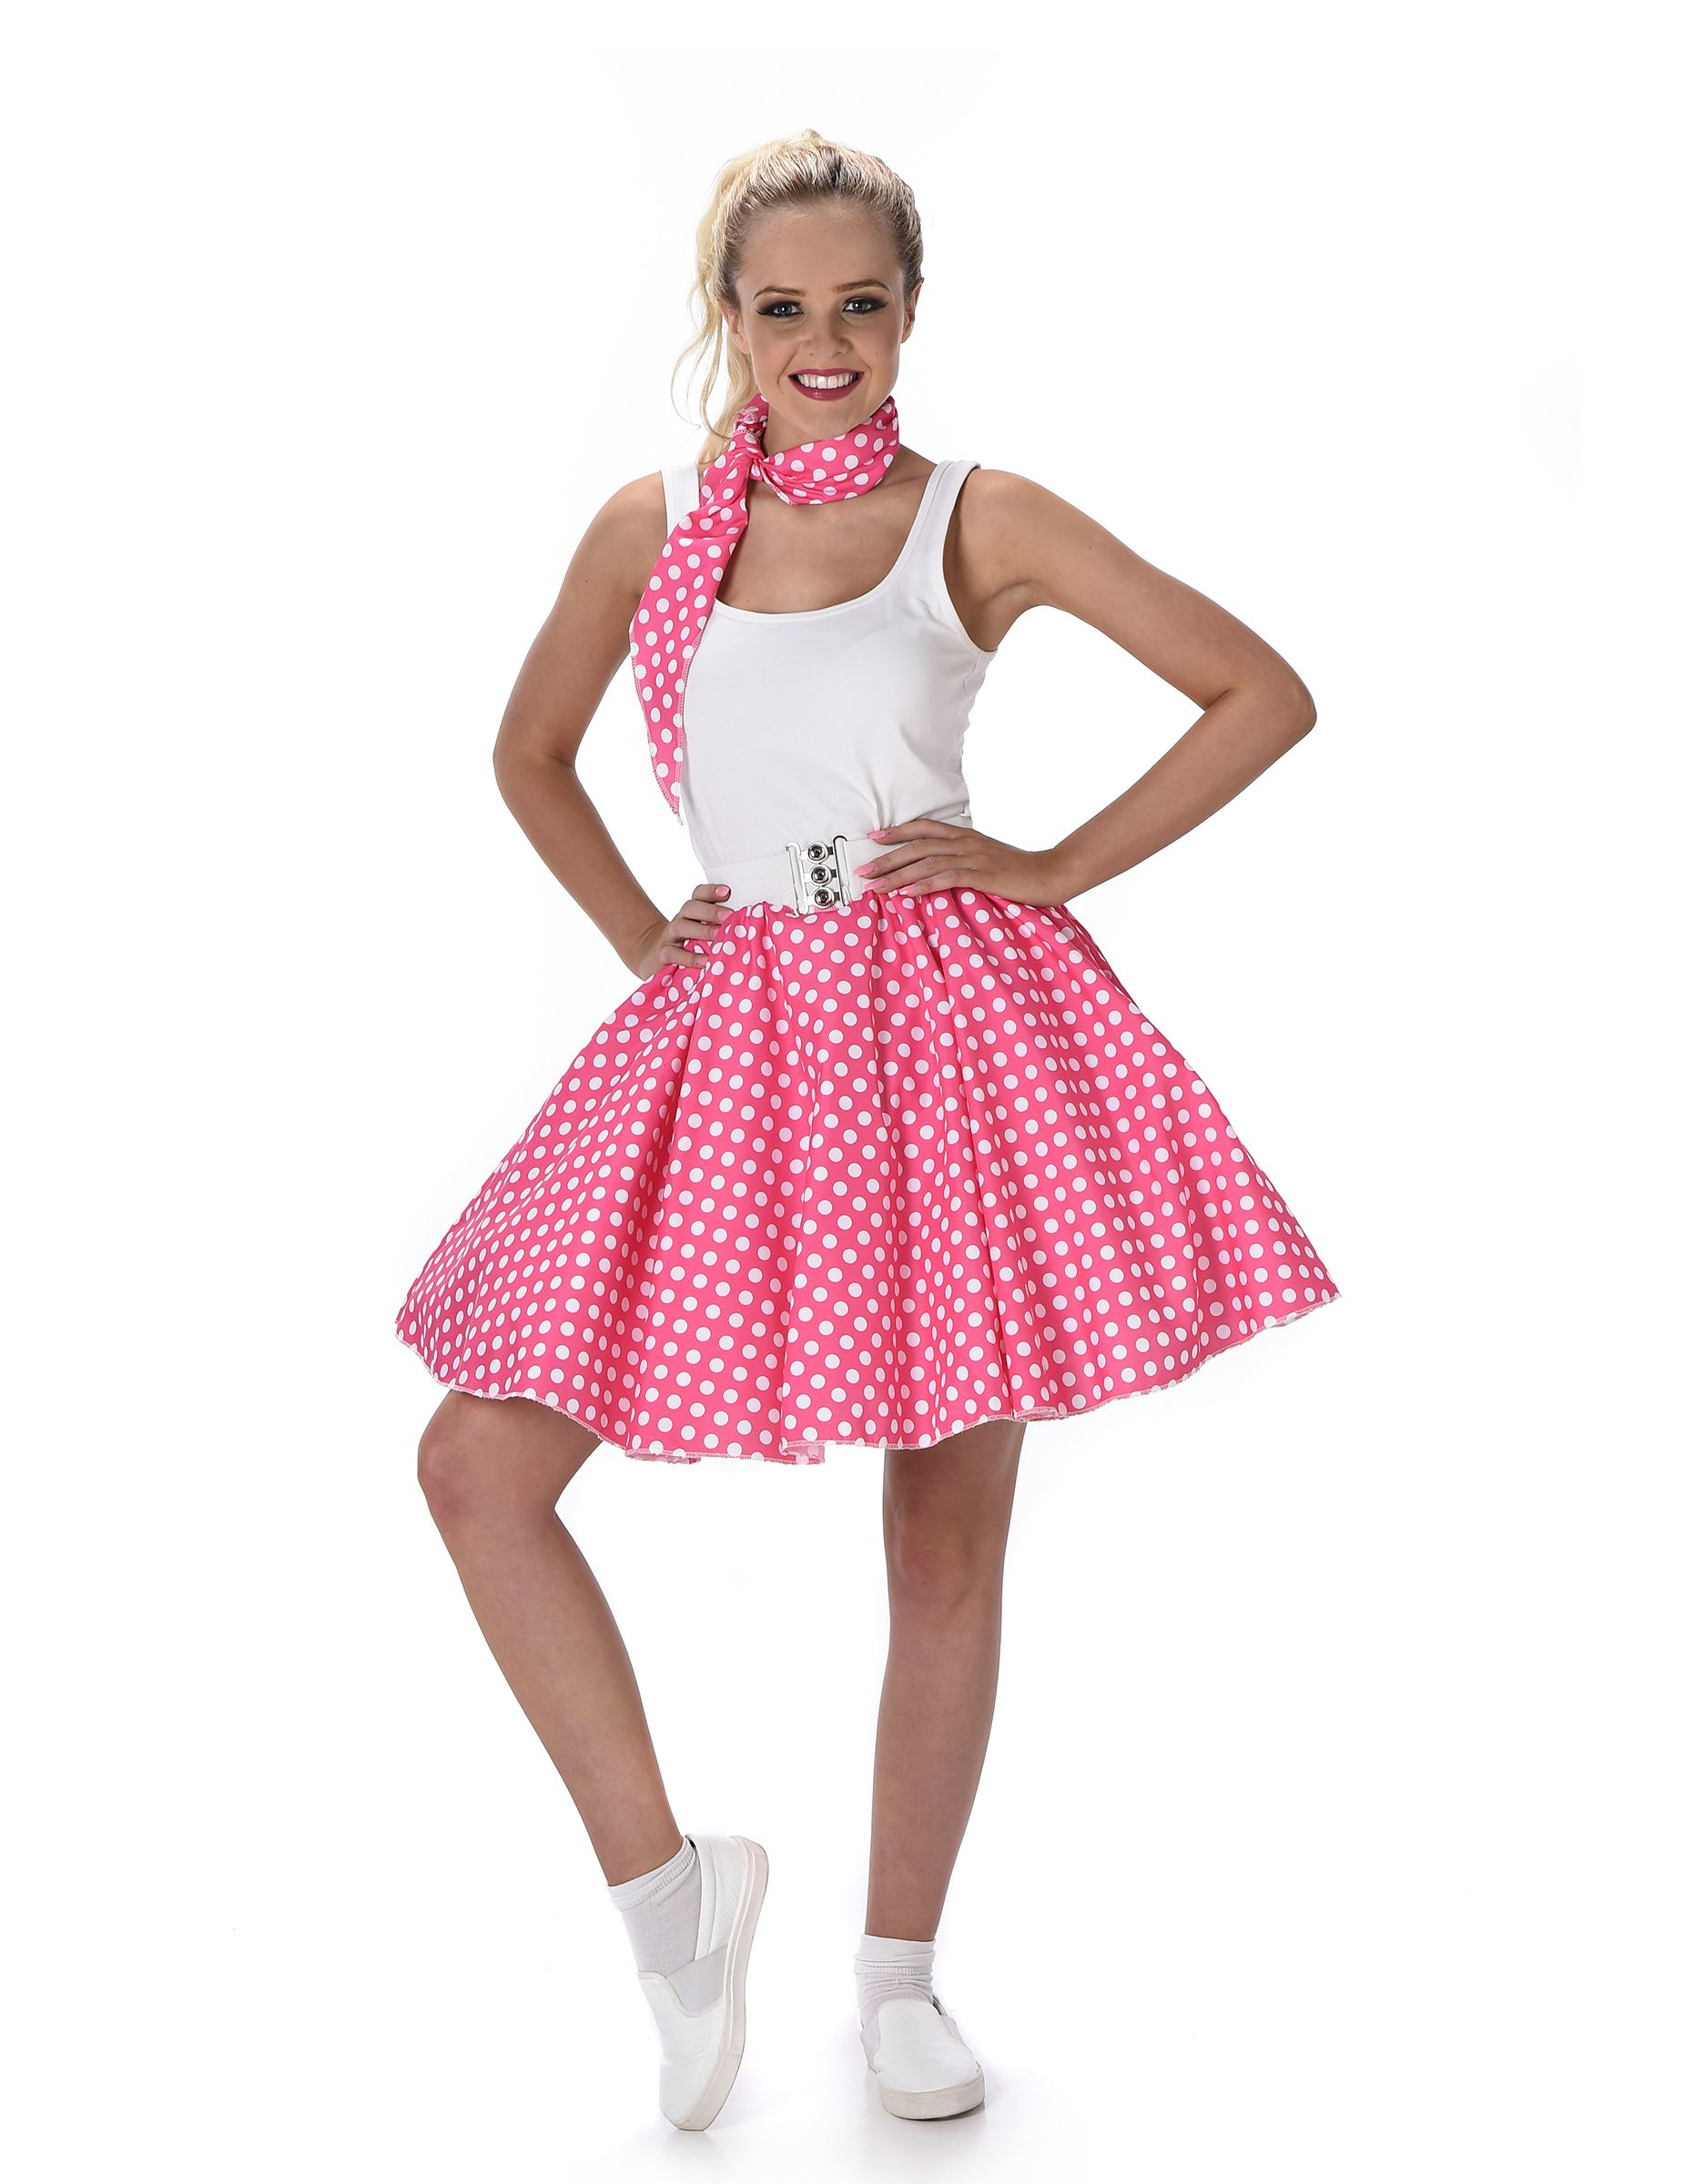 pink fifties retro outfit for women in 2018 | spirit week decades